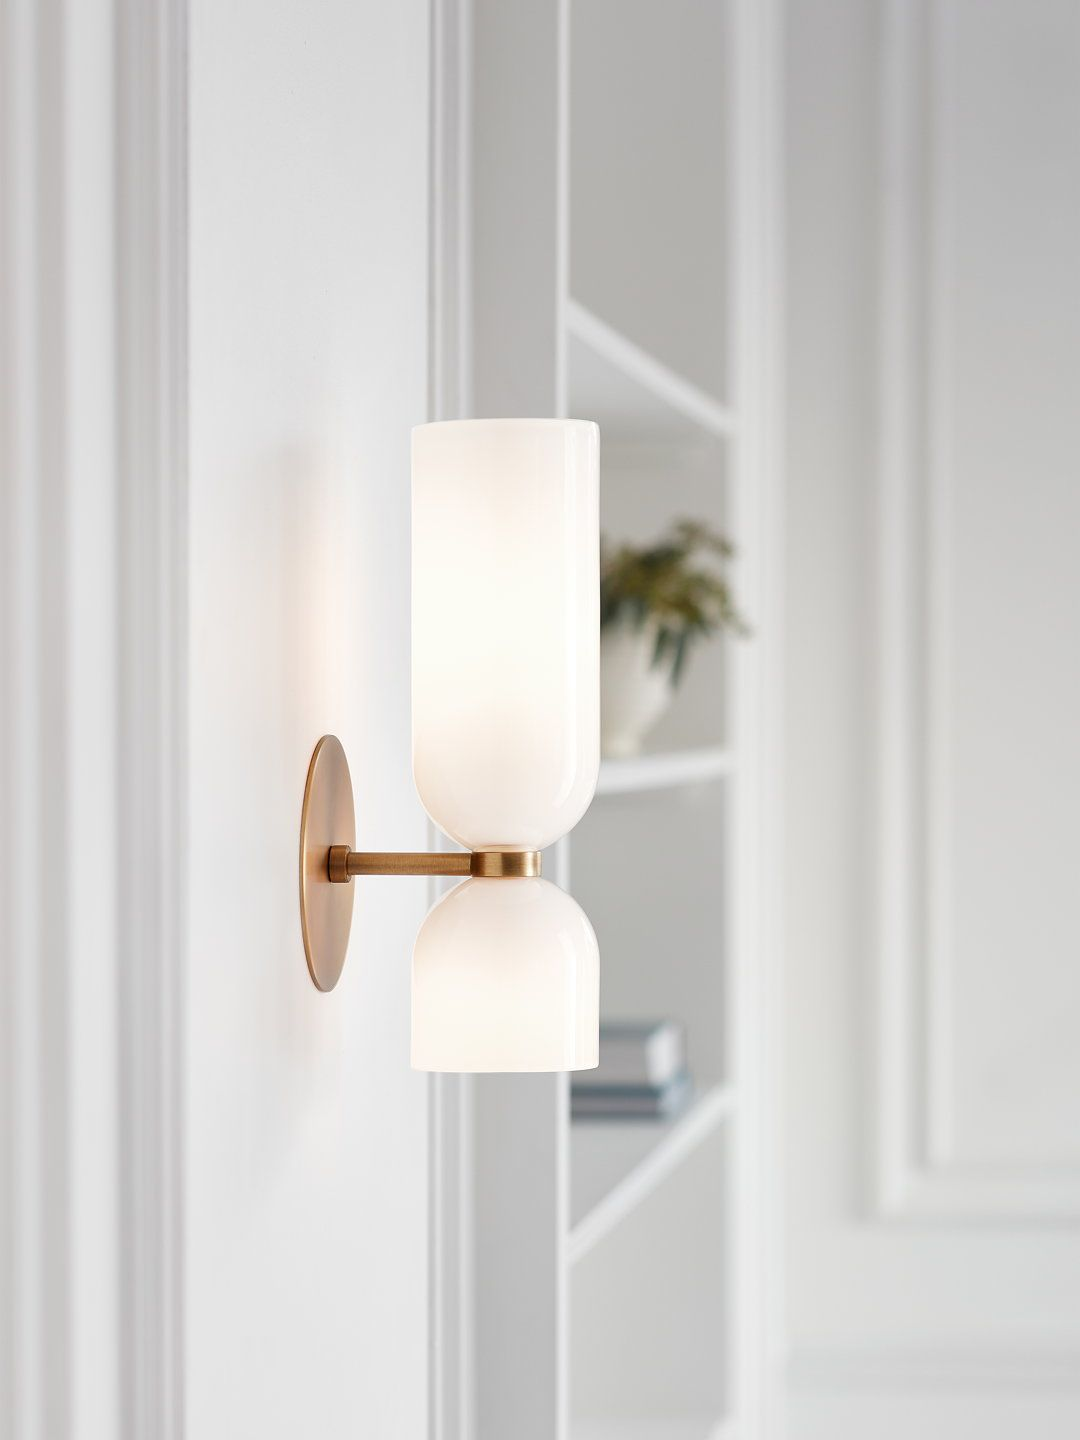 Lightmaker Studio Unveils New Wall Sconces